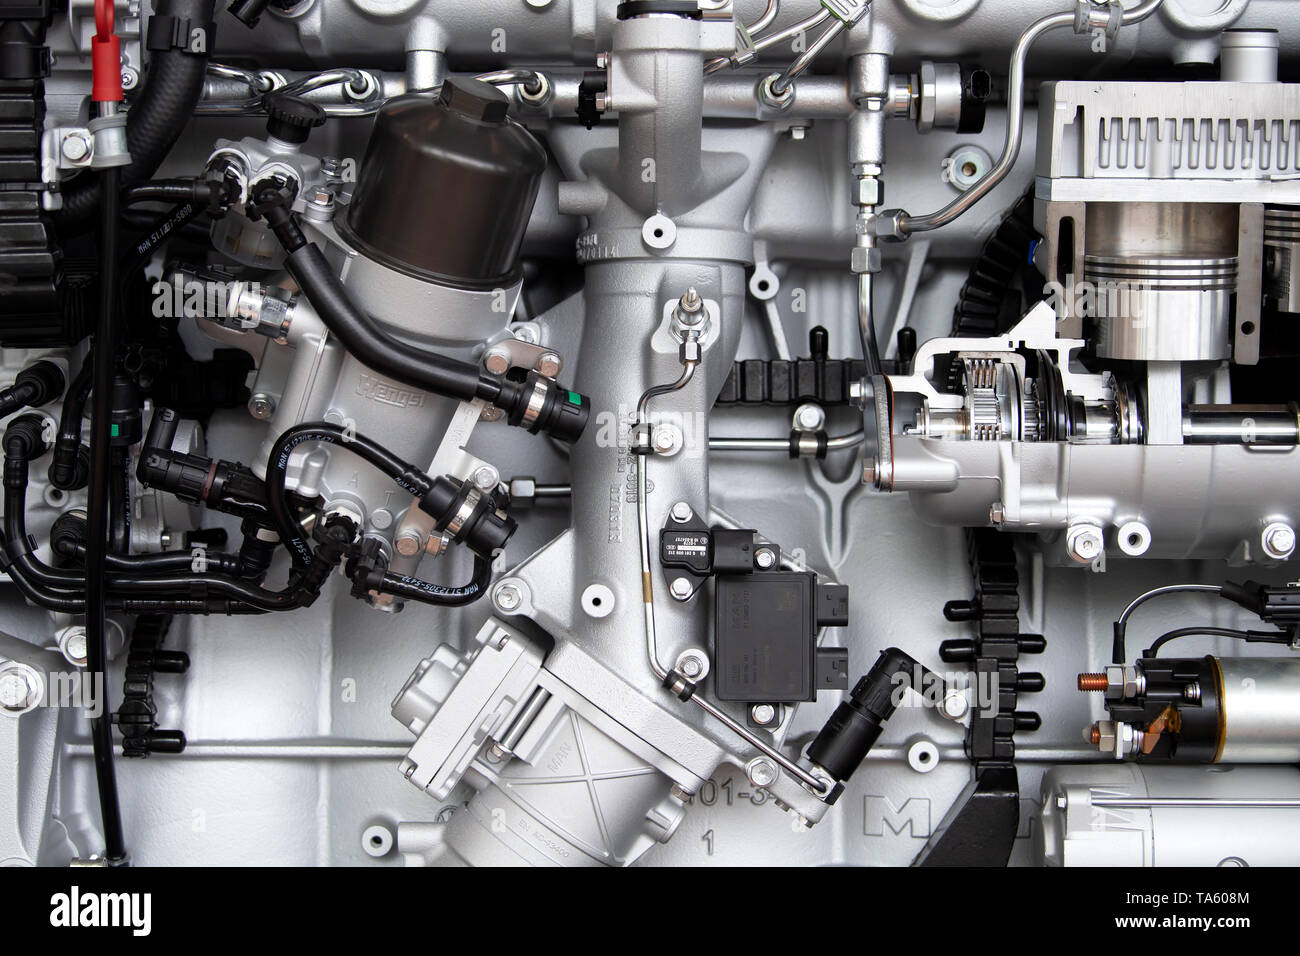 Munich, Germany. 22nd May, 2019. A MAN SE truck engine is to be seen before the start of the Annual General Meeting. The bus and truck manufacturer now owns 95 percent of the VW subsidiary Traton SE, which plans to go public shortly. Credit: Sven Hoppe/dpa/Alamy Live News - Stock Image